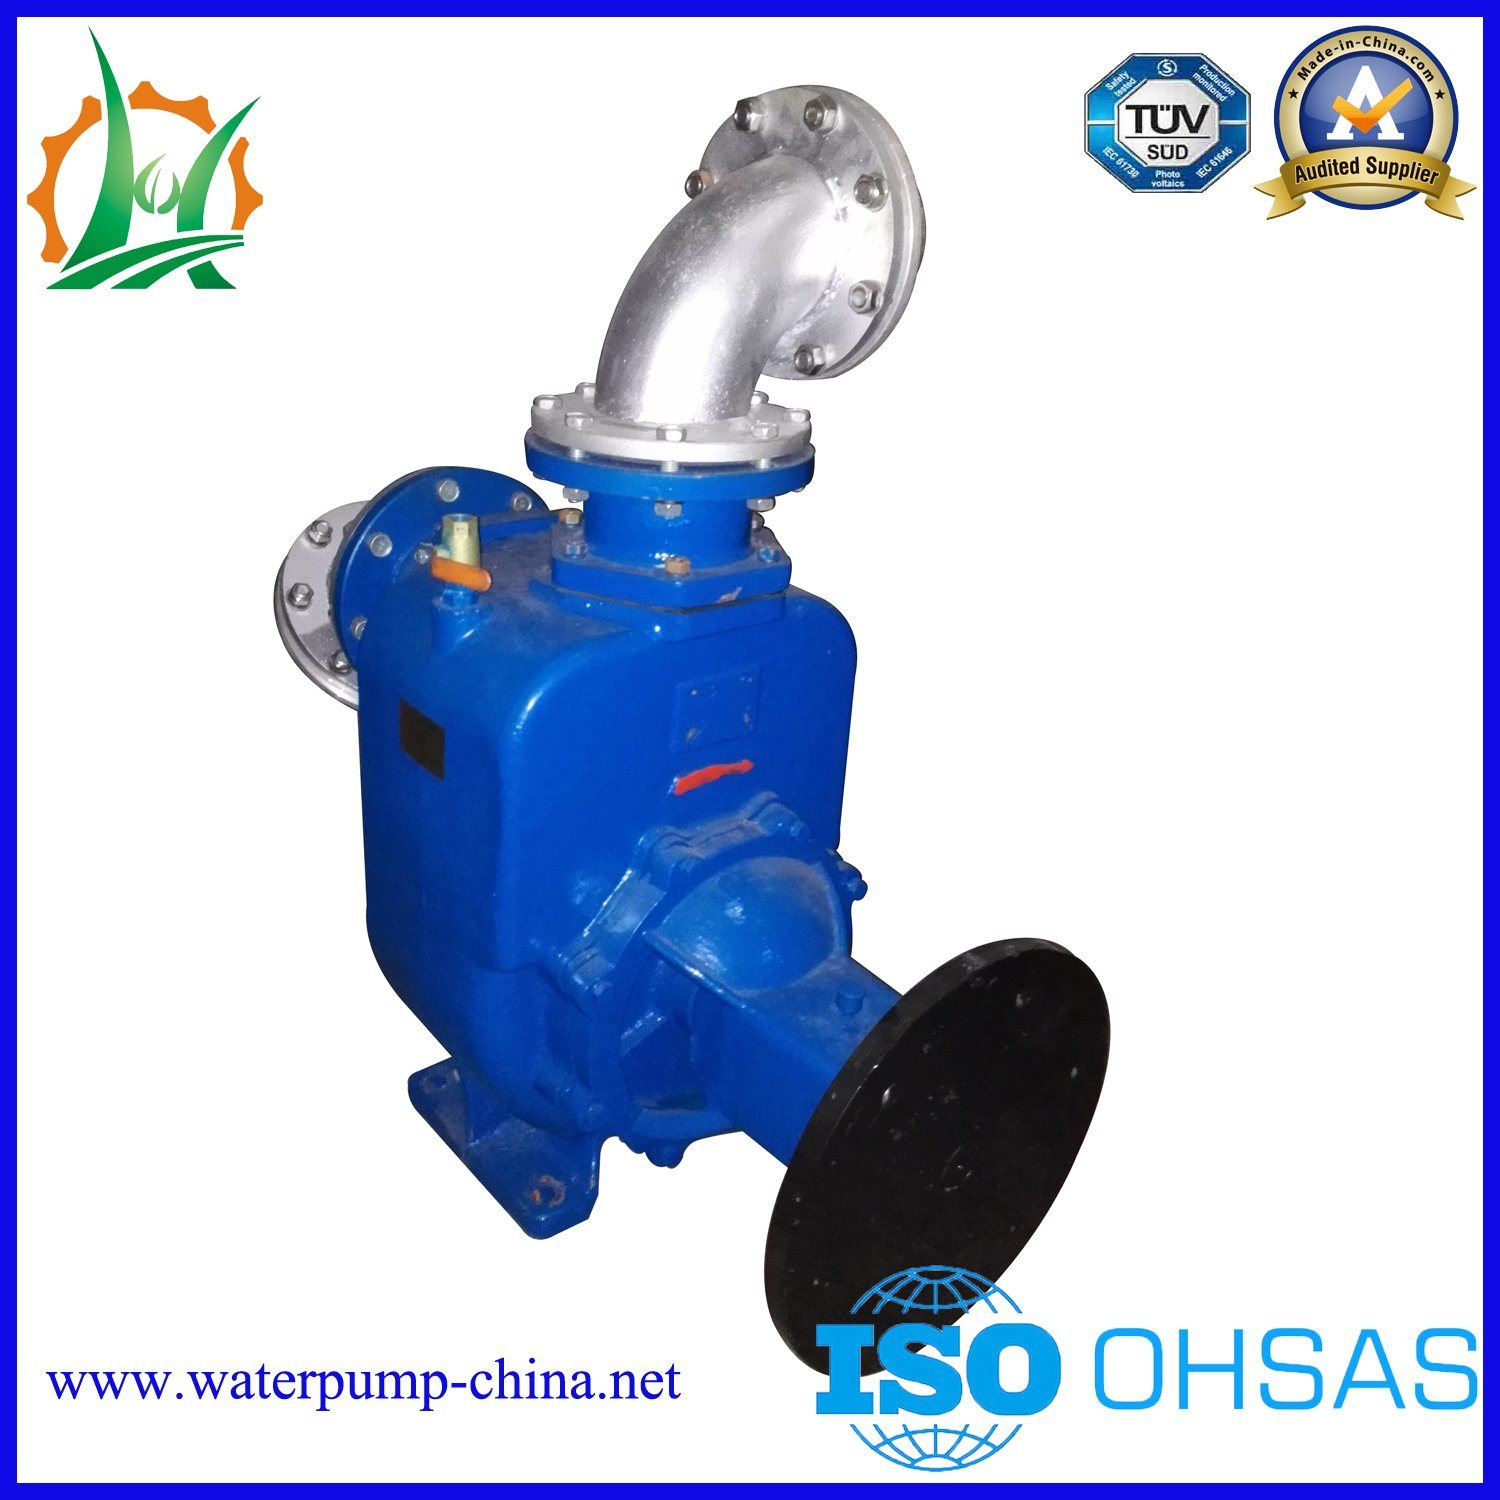 Non-Clogging Centrifugal Self-Priming Sewage Water Pump Trailer Sets